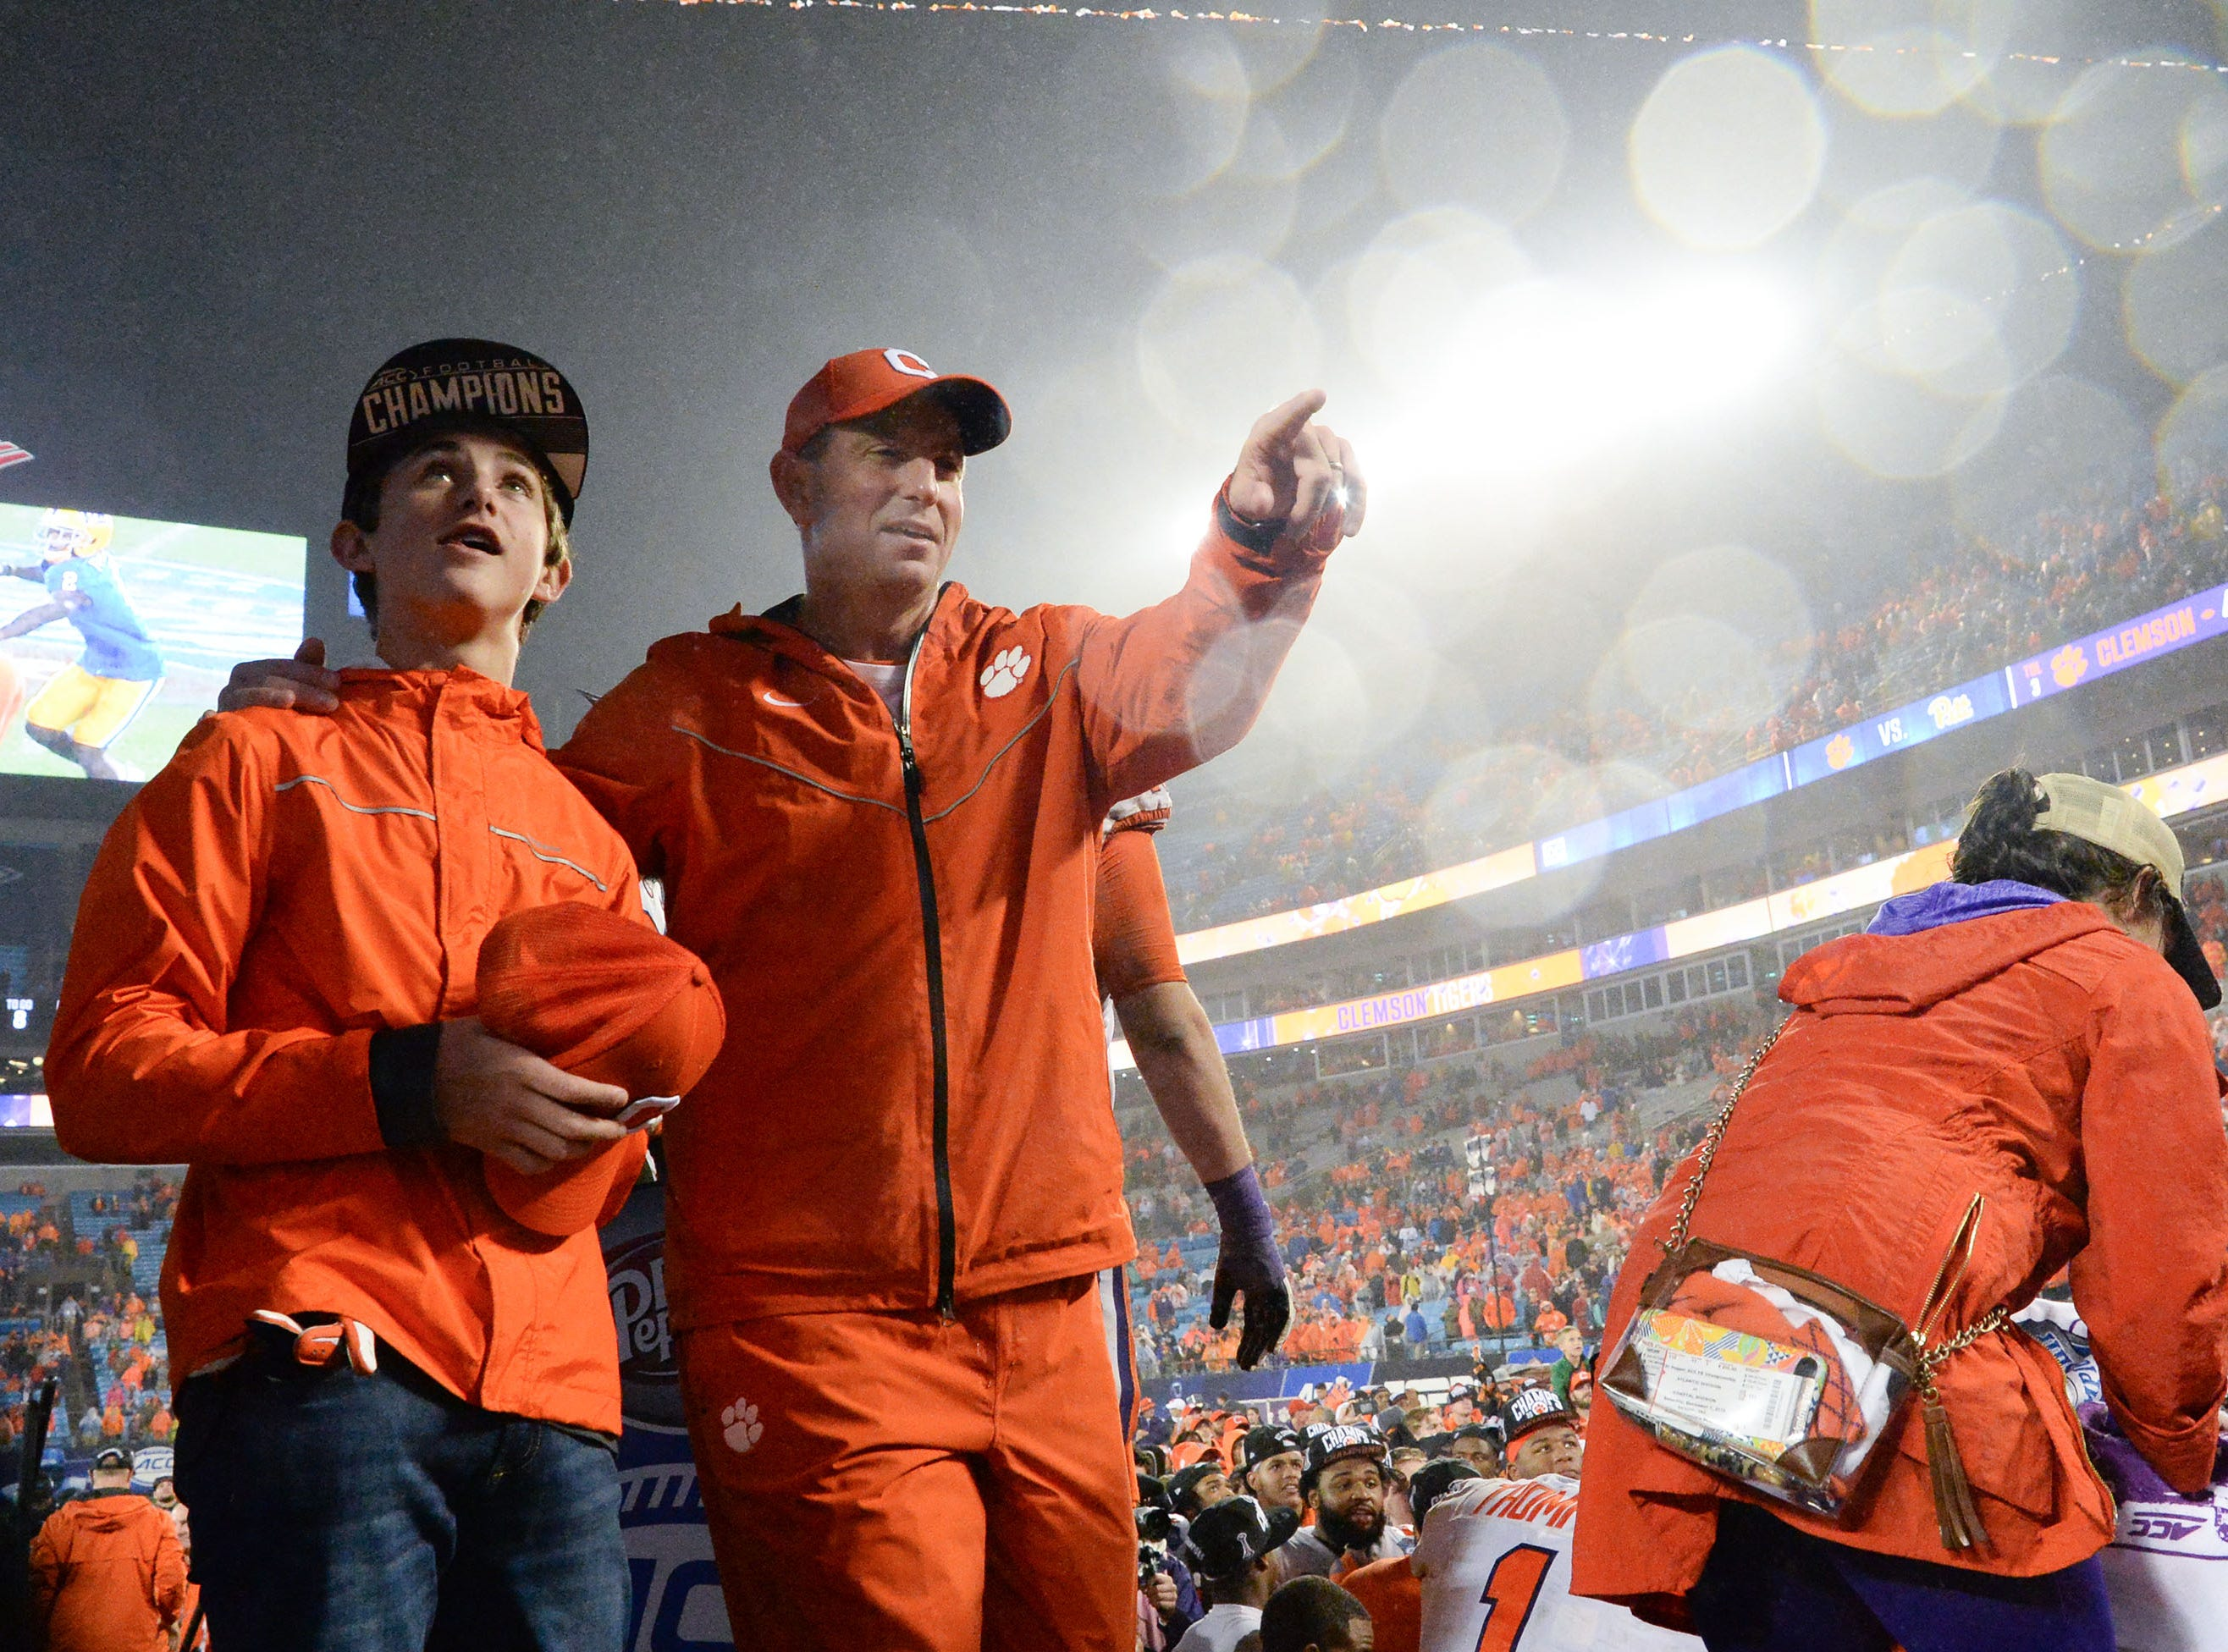 Clay Swinney and his father Clemson Head Coach Dabo Swinney after a 42-10 win after the game at the Dr. Pepper ACC football championship at Bank of America Stadium in Charlotte, N.C. on Saturday, December 1, 2018.